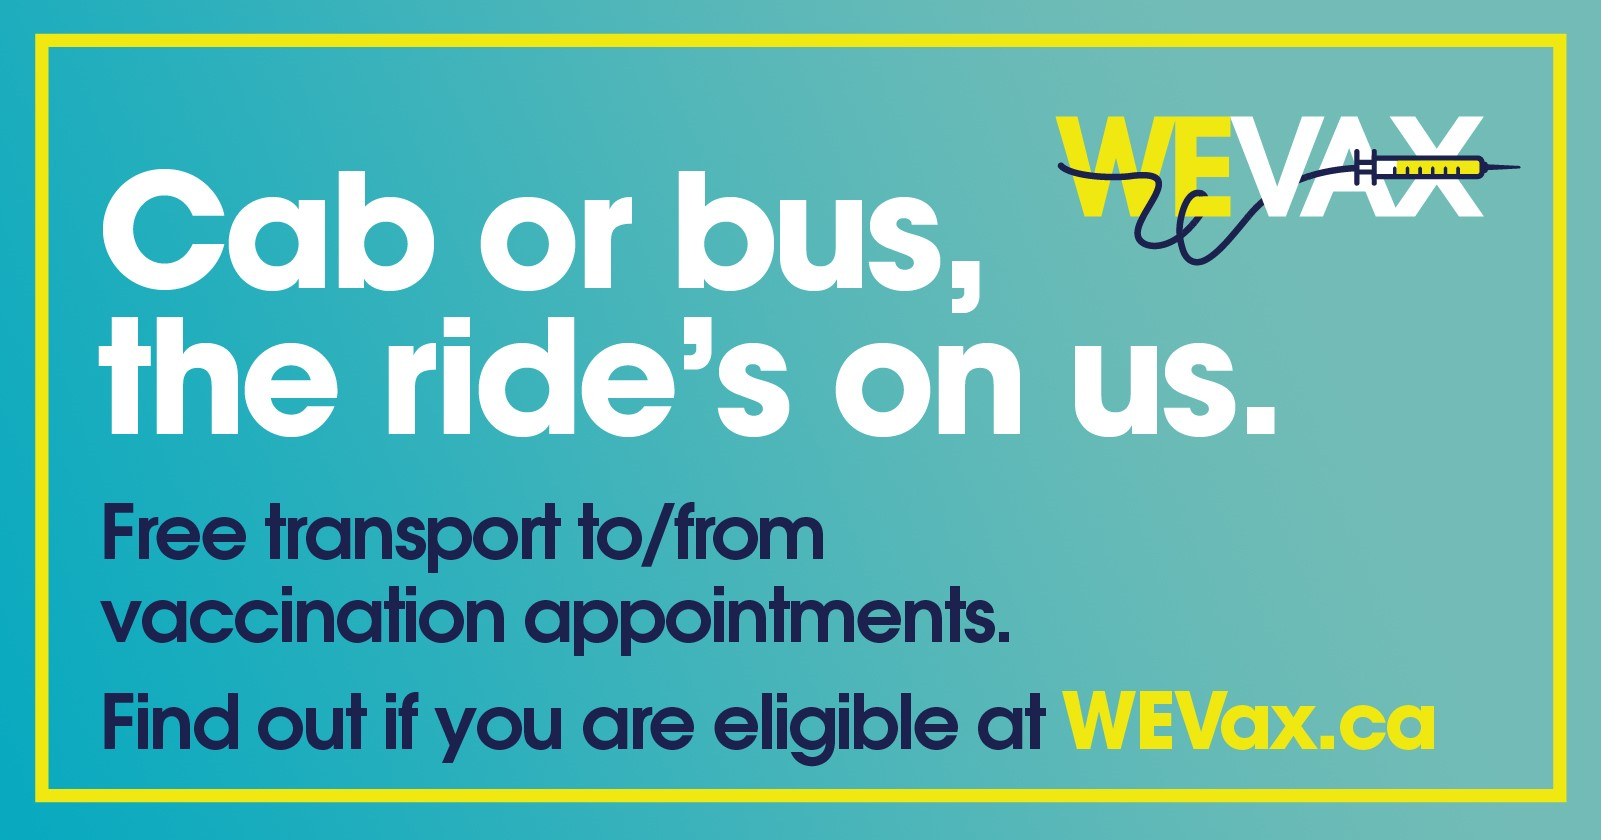 Cab or bus, the ride's on us. Free transport to/from vaccination appointments. Find out if you are eligible at wevax.ca